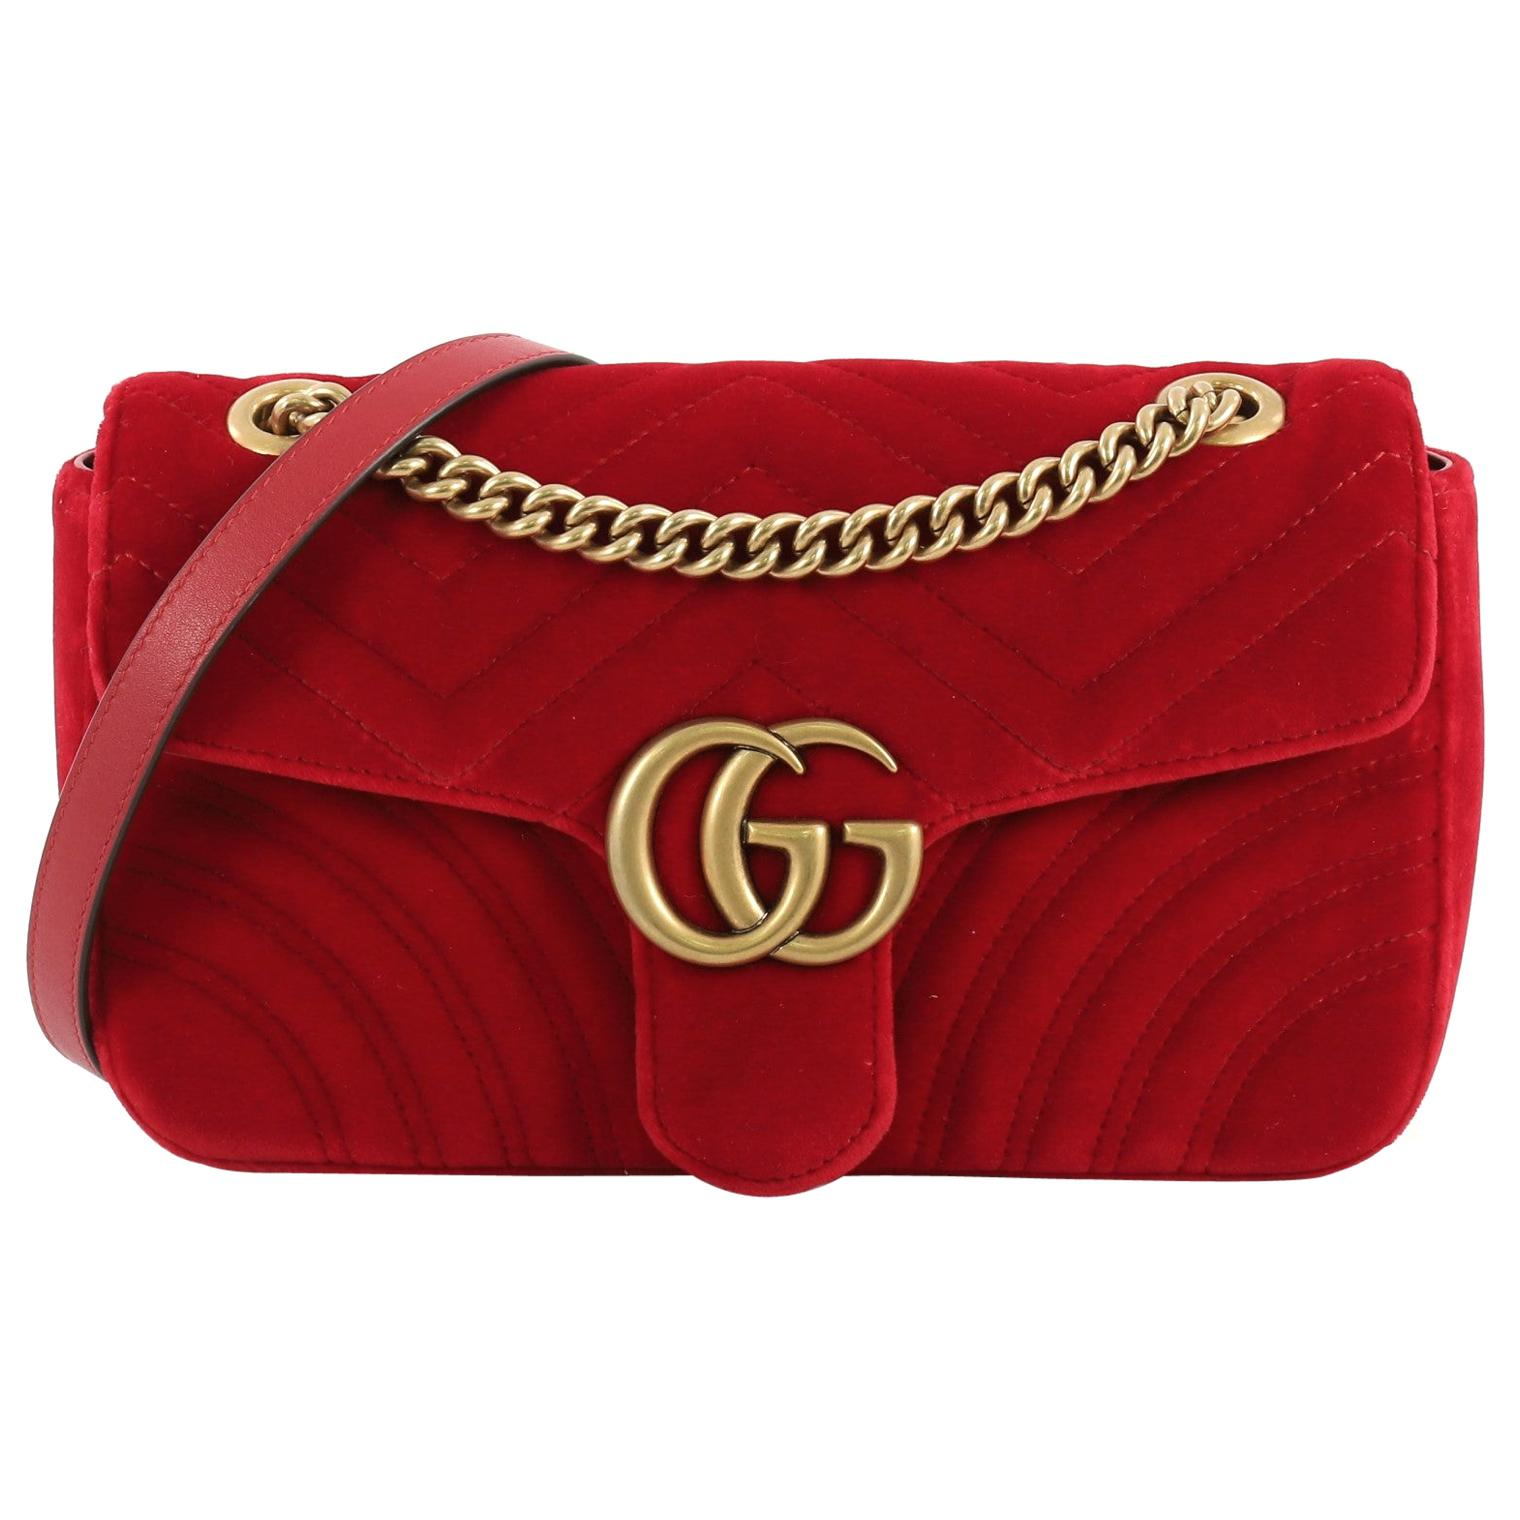 b8ec7ad04 Vintage Gucci Handbags and Purses - 2,341 For Sale at 1stdibs - Page 2